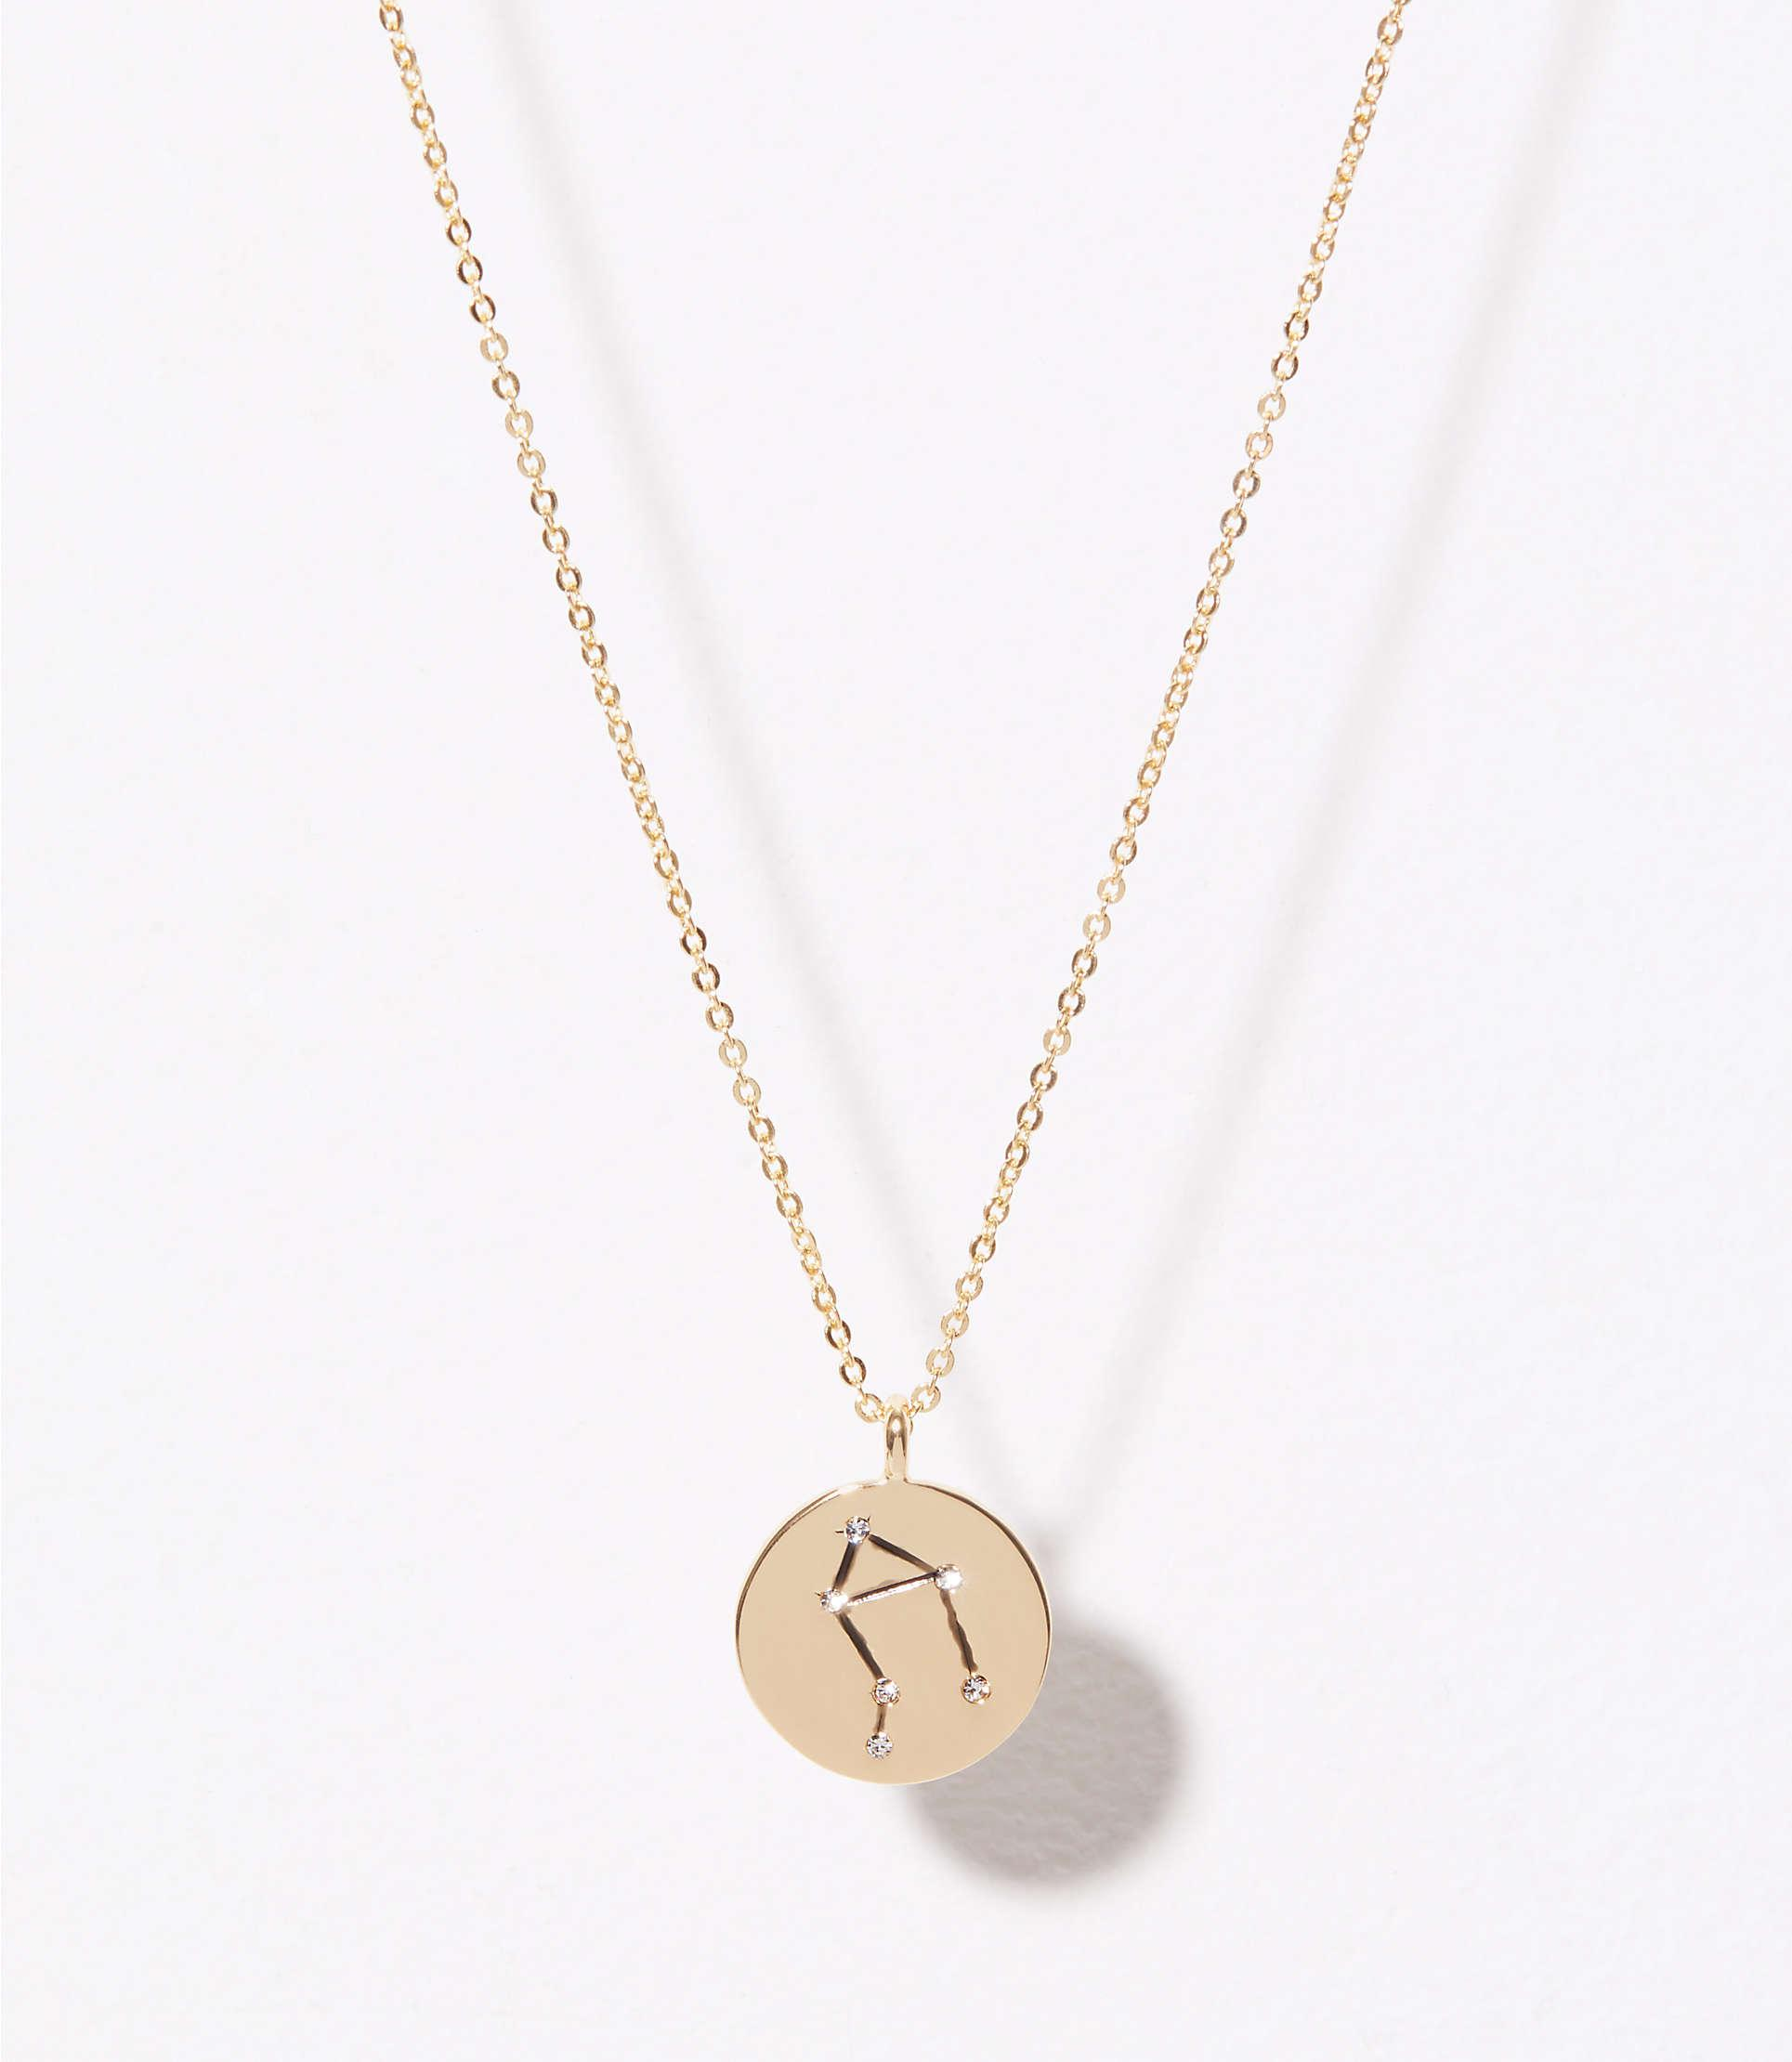 zodiac necklaces swarovski leo libra necklace pendant